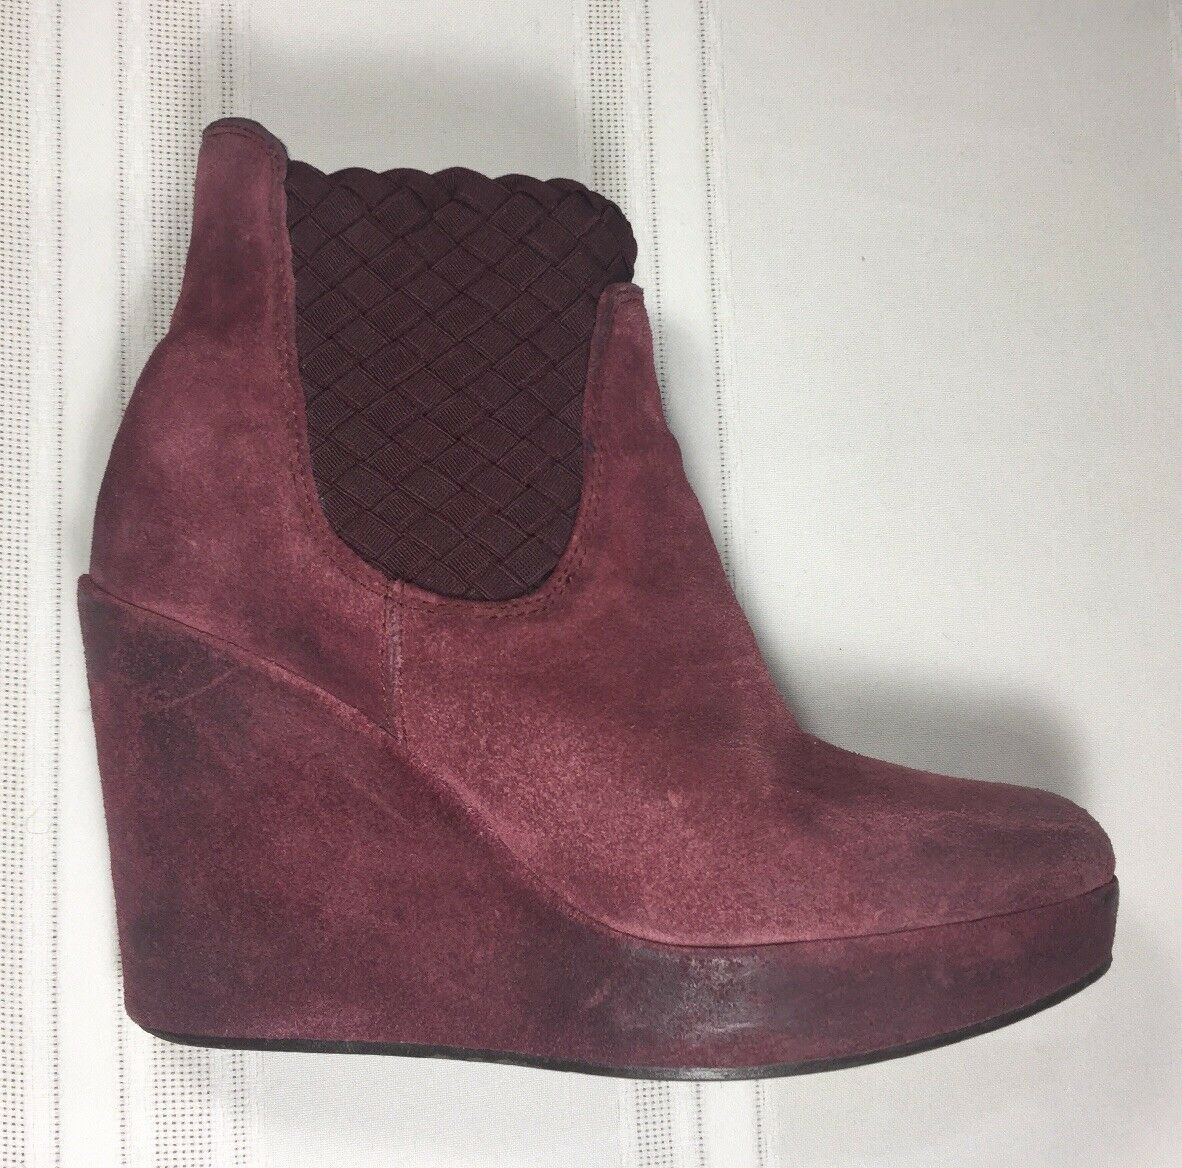 HOSS INTROPIA Ankle Boots SZ 7.5 7.5 7.5 Kristin Suede Distress Look Wedge Slip On 6949f7